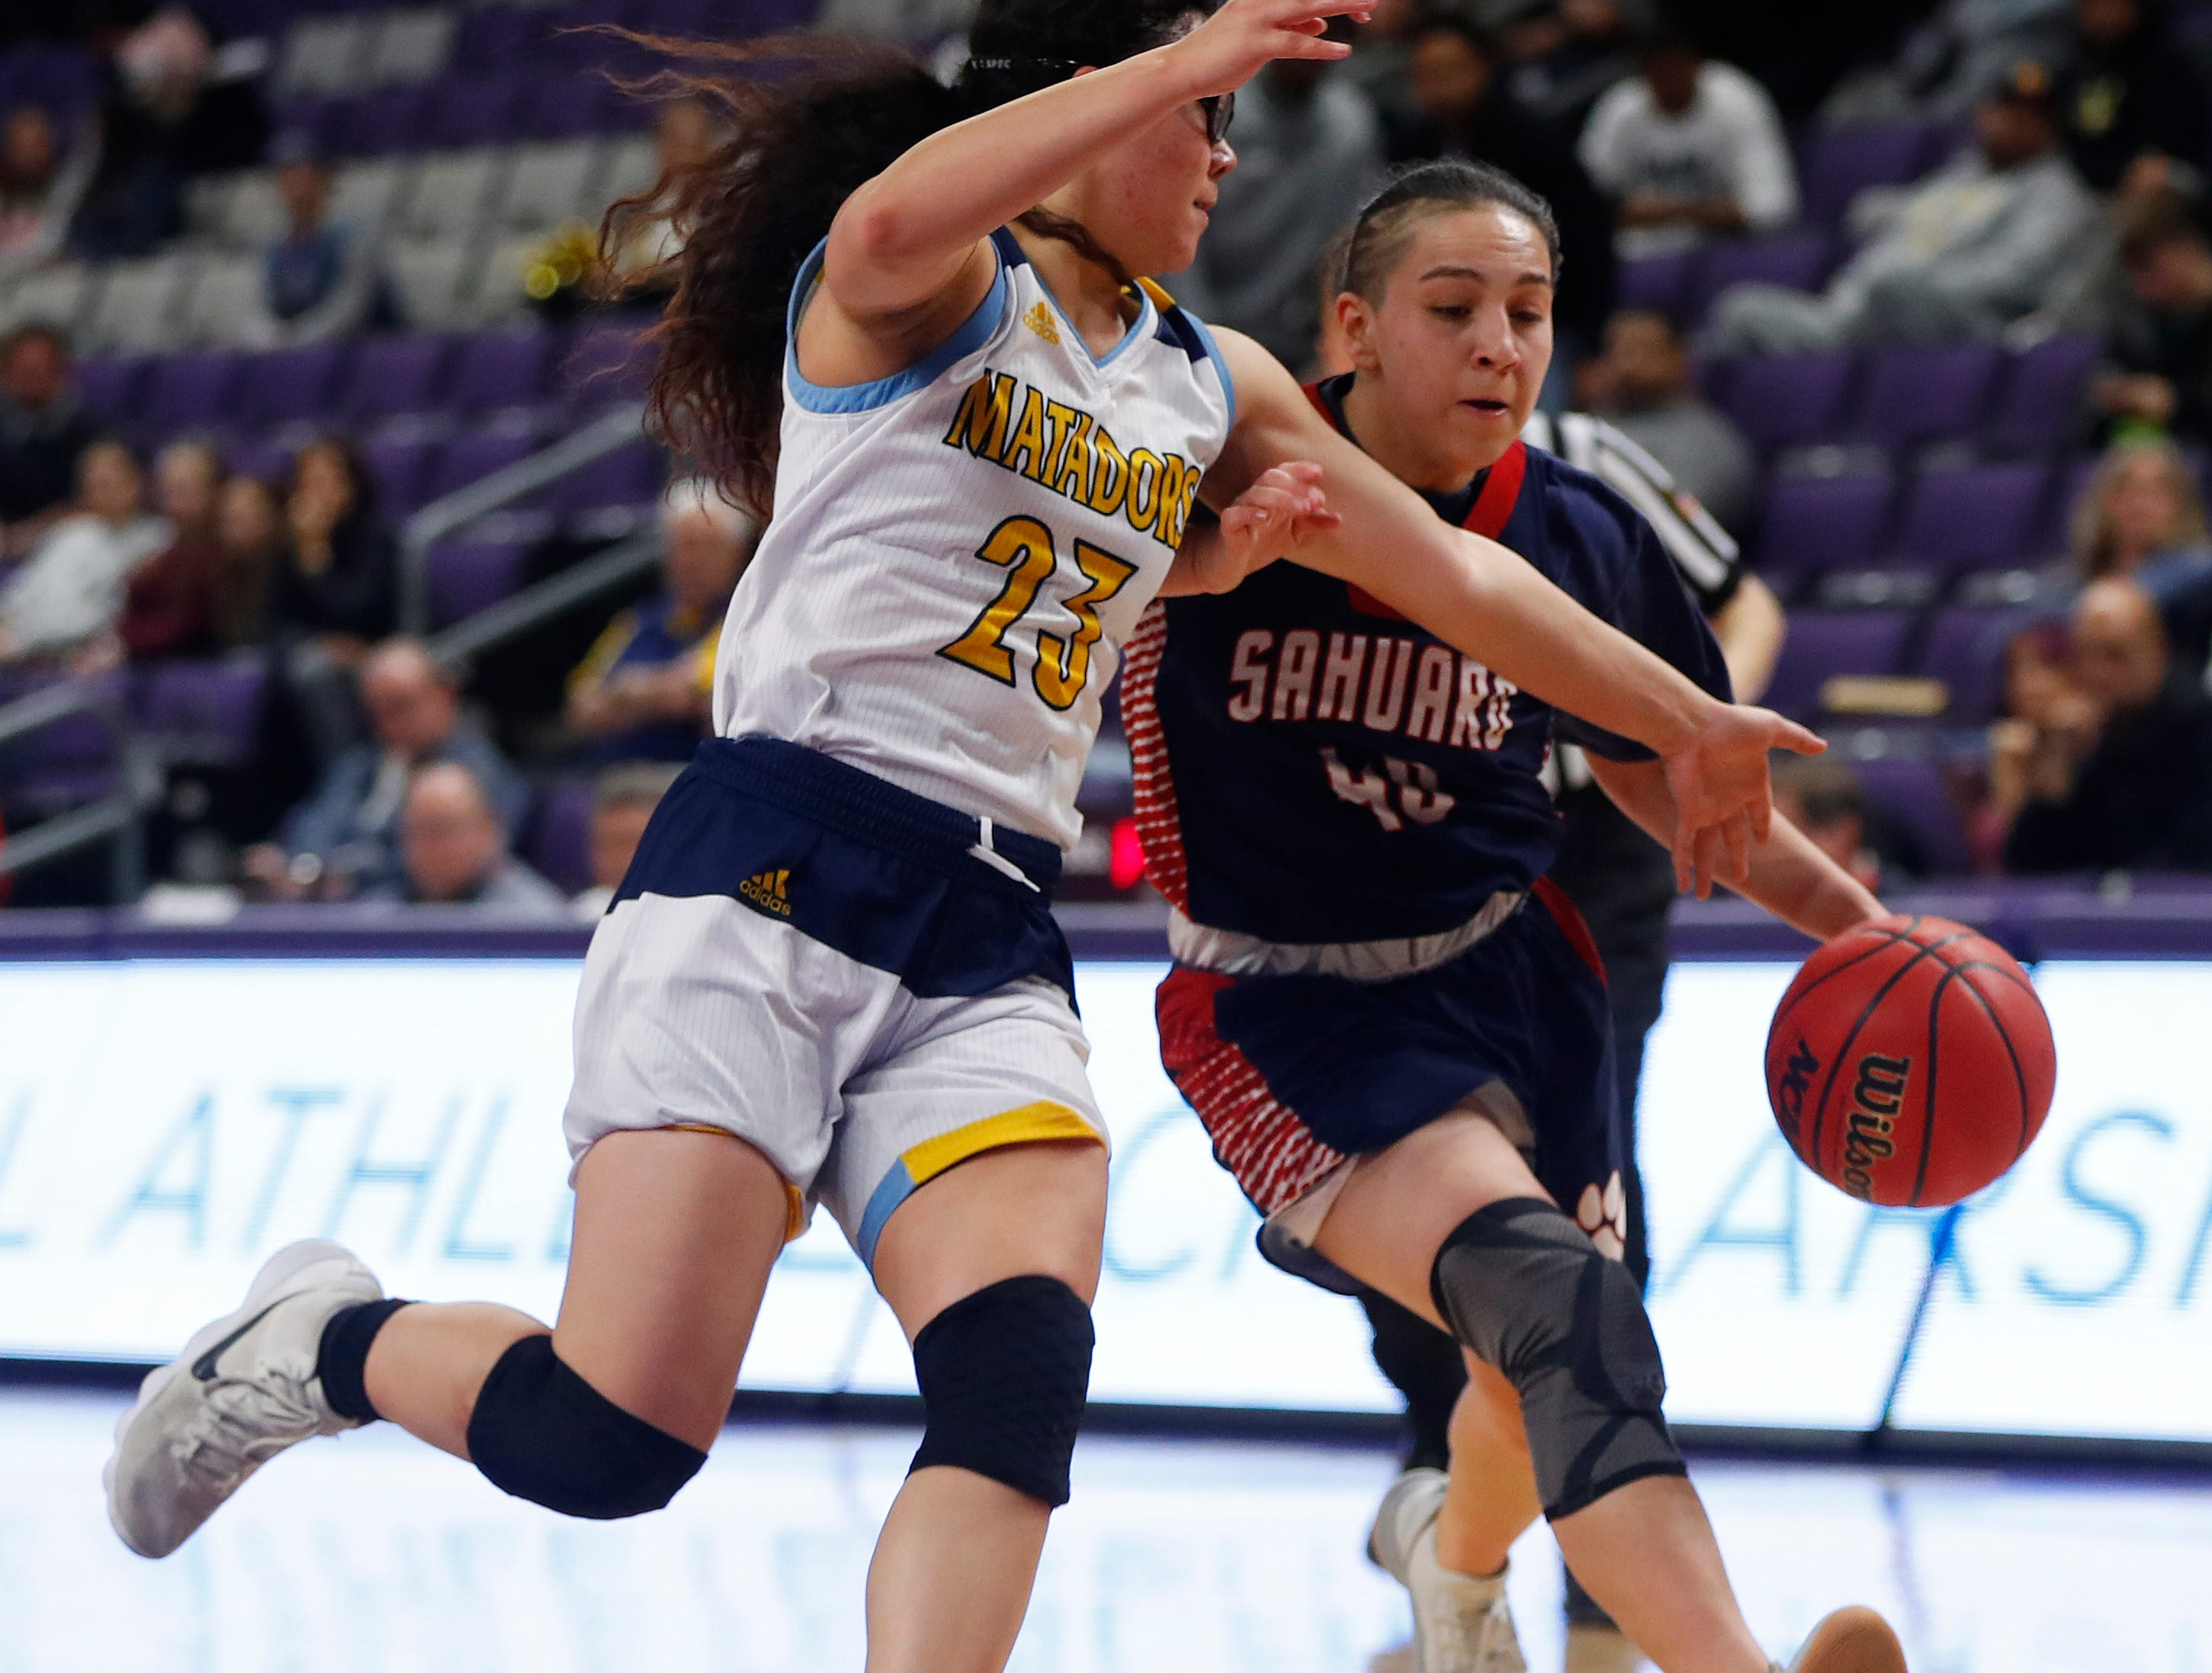 Sahuaro's Milaya Leon (40) drives to the basket against Shadow Mountain's Sissy Paloma (23) during second half of the 4A girls basketball semifinal game at Grand Canyon University Arena in Phoenix, Ariz. on February 22, 2019.